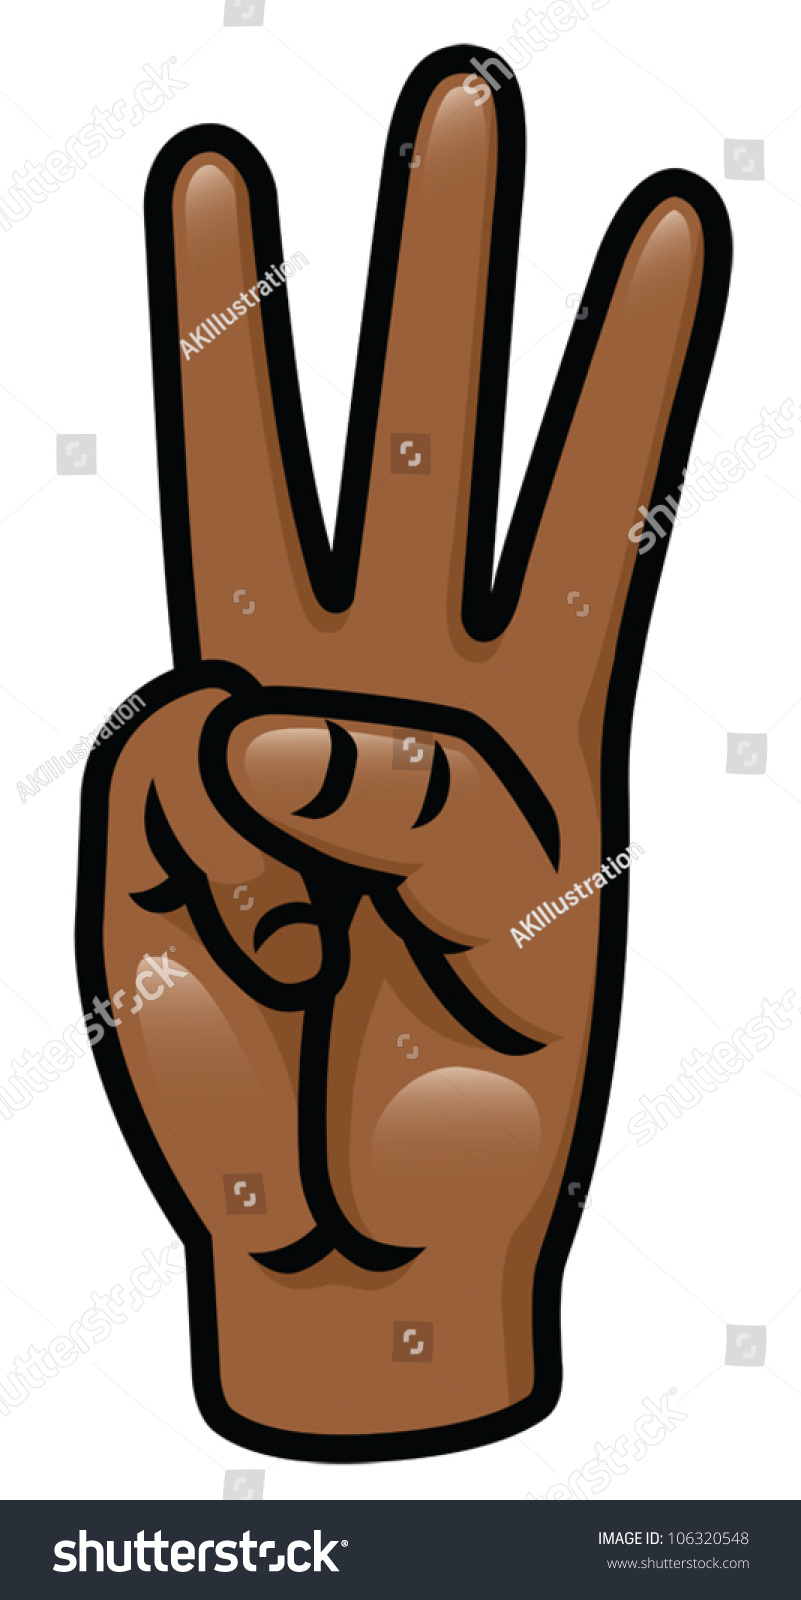 Cartoon Characters 3 Fingers : Illustration of a cartoon hand holding up three fingers